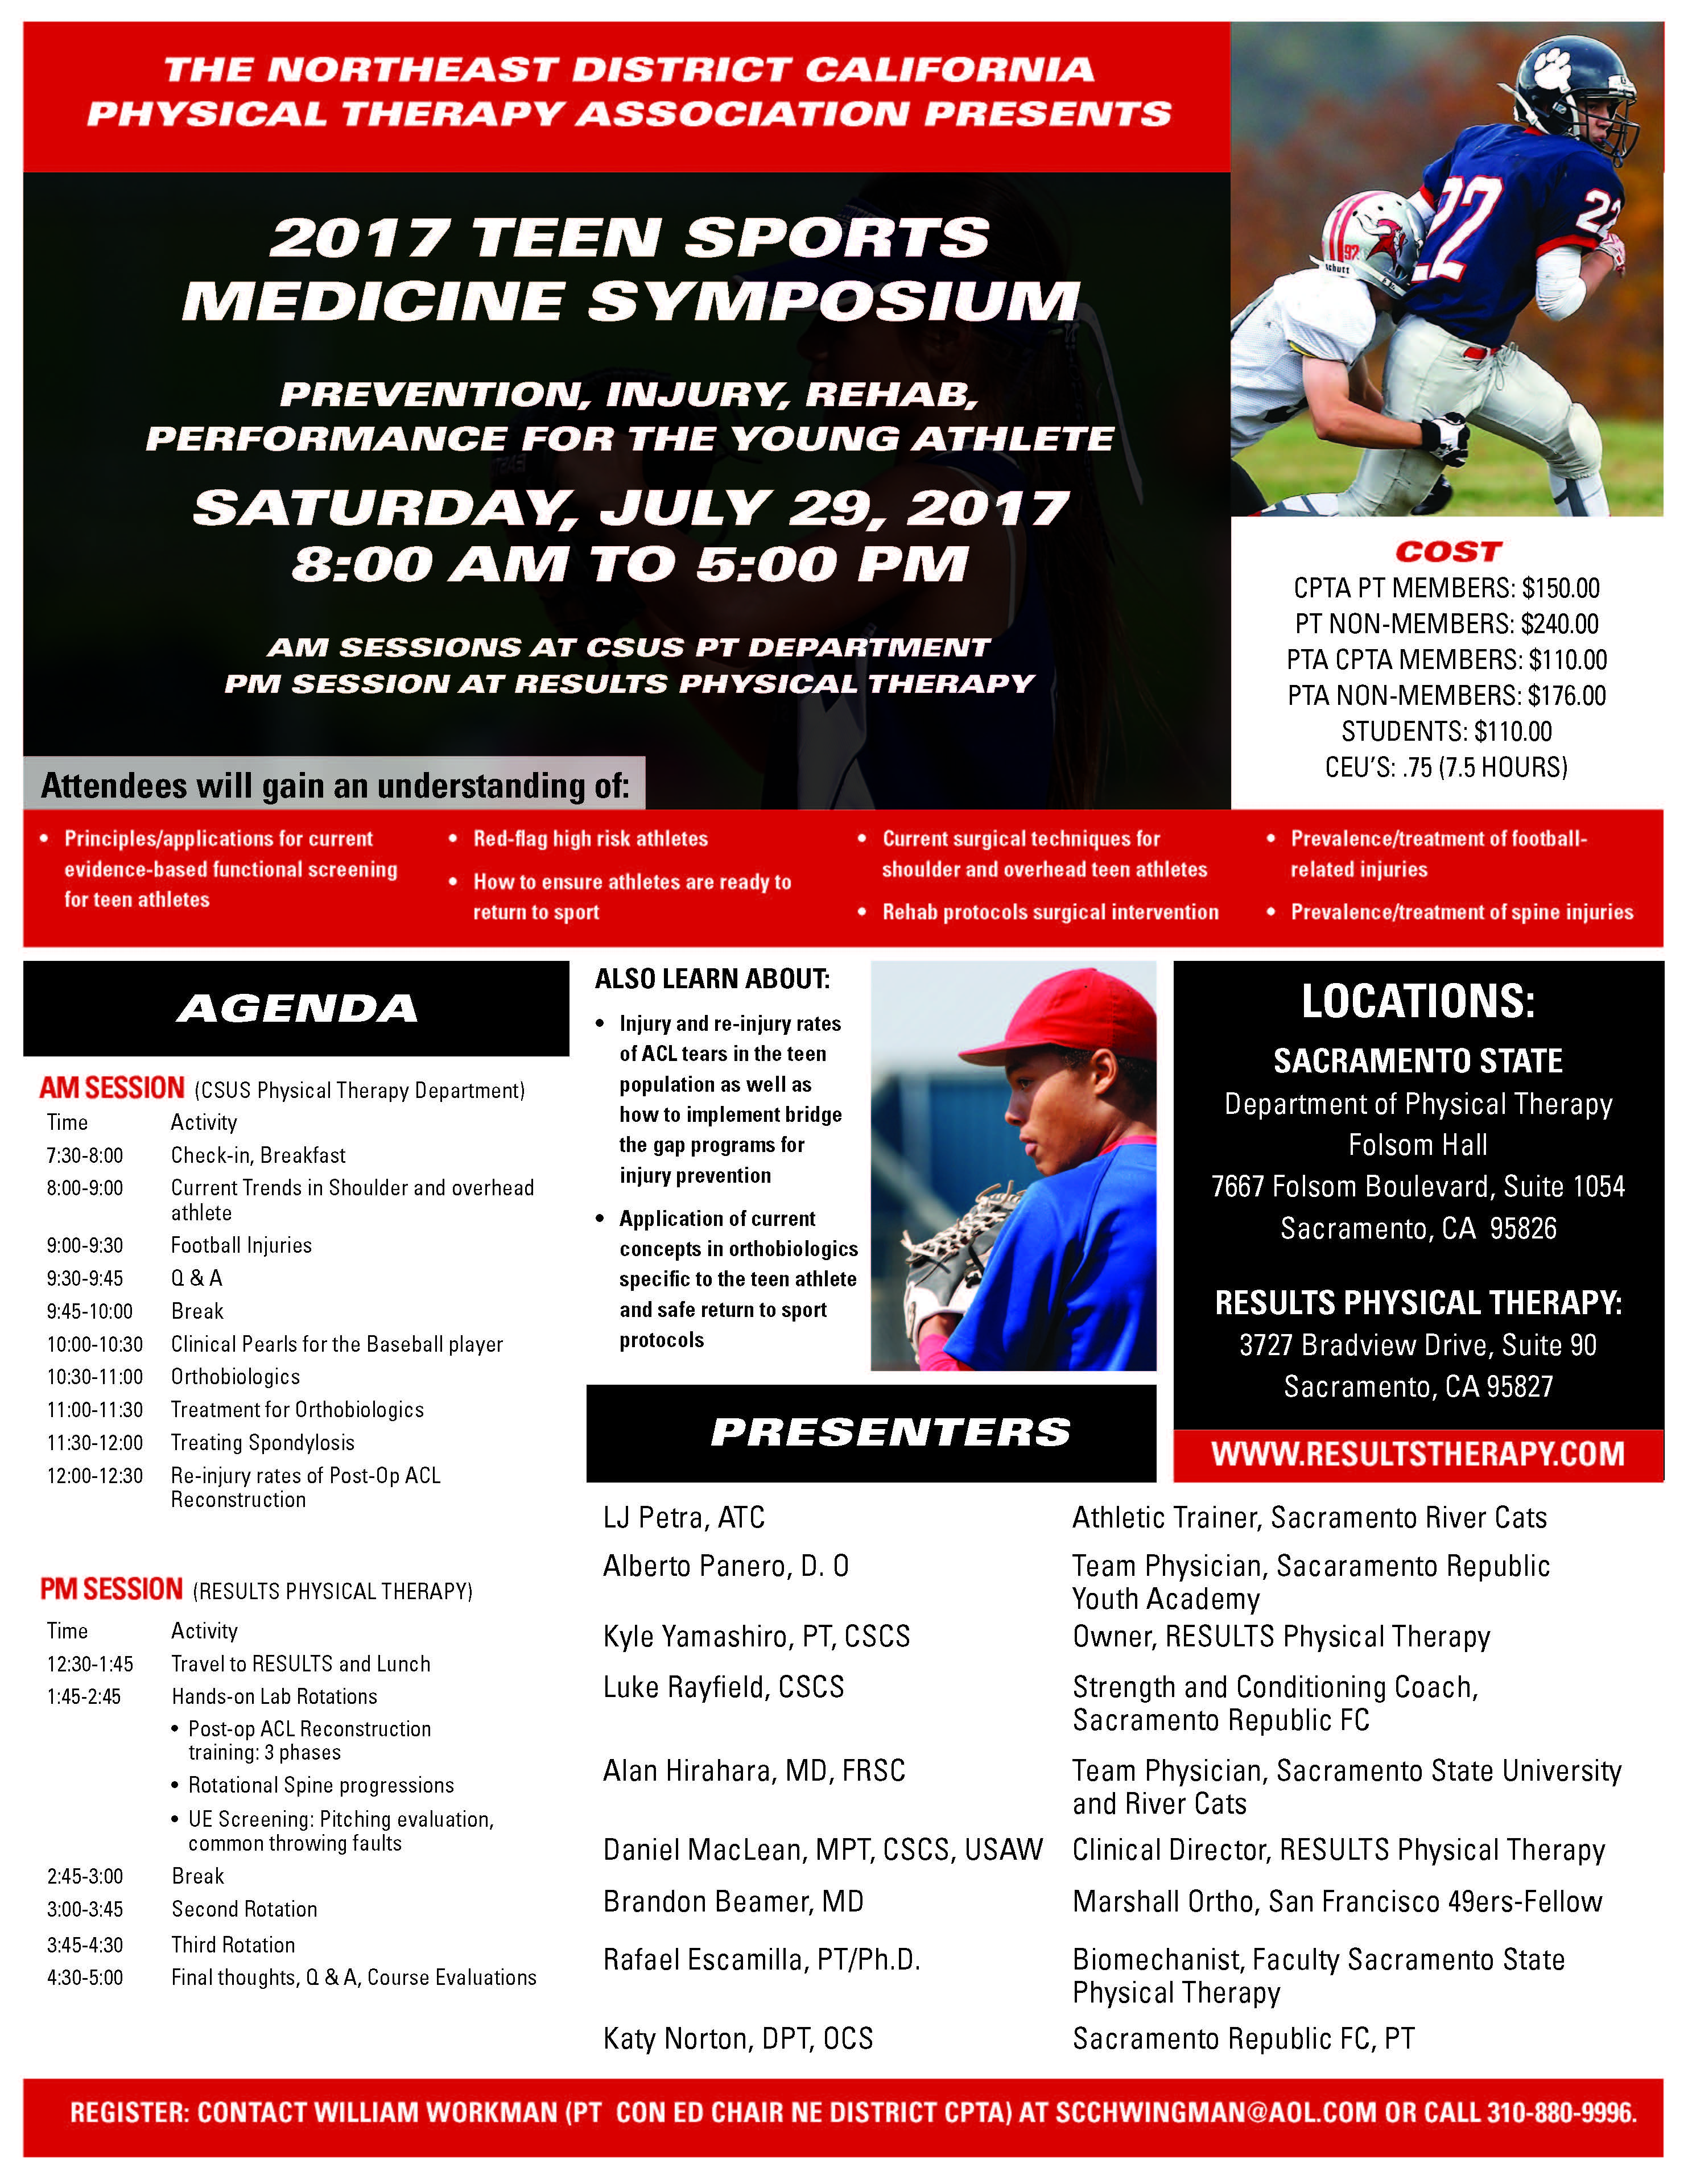 California physical therapy - Event Details